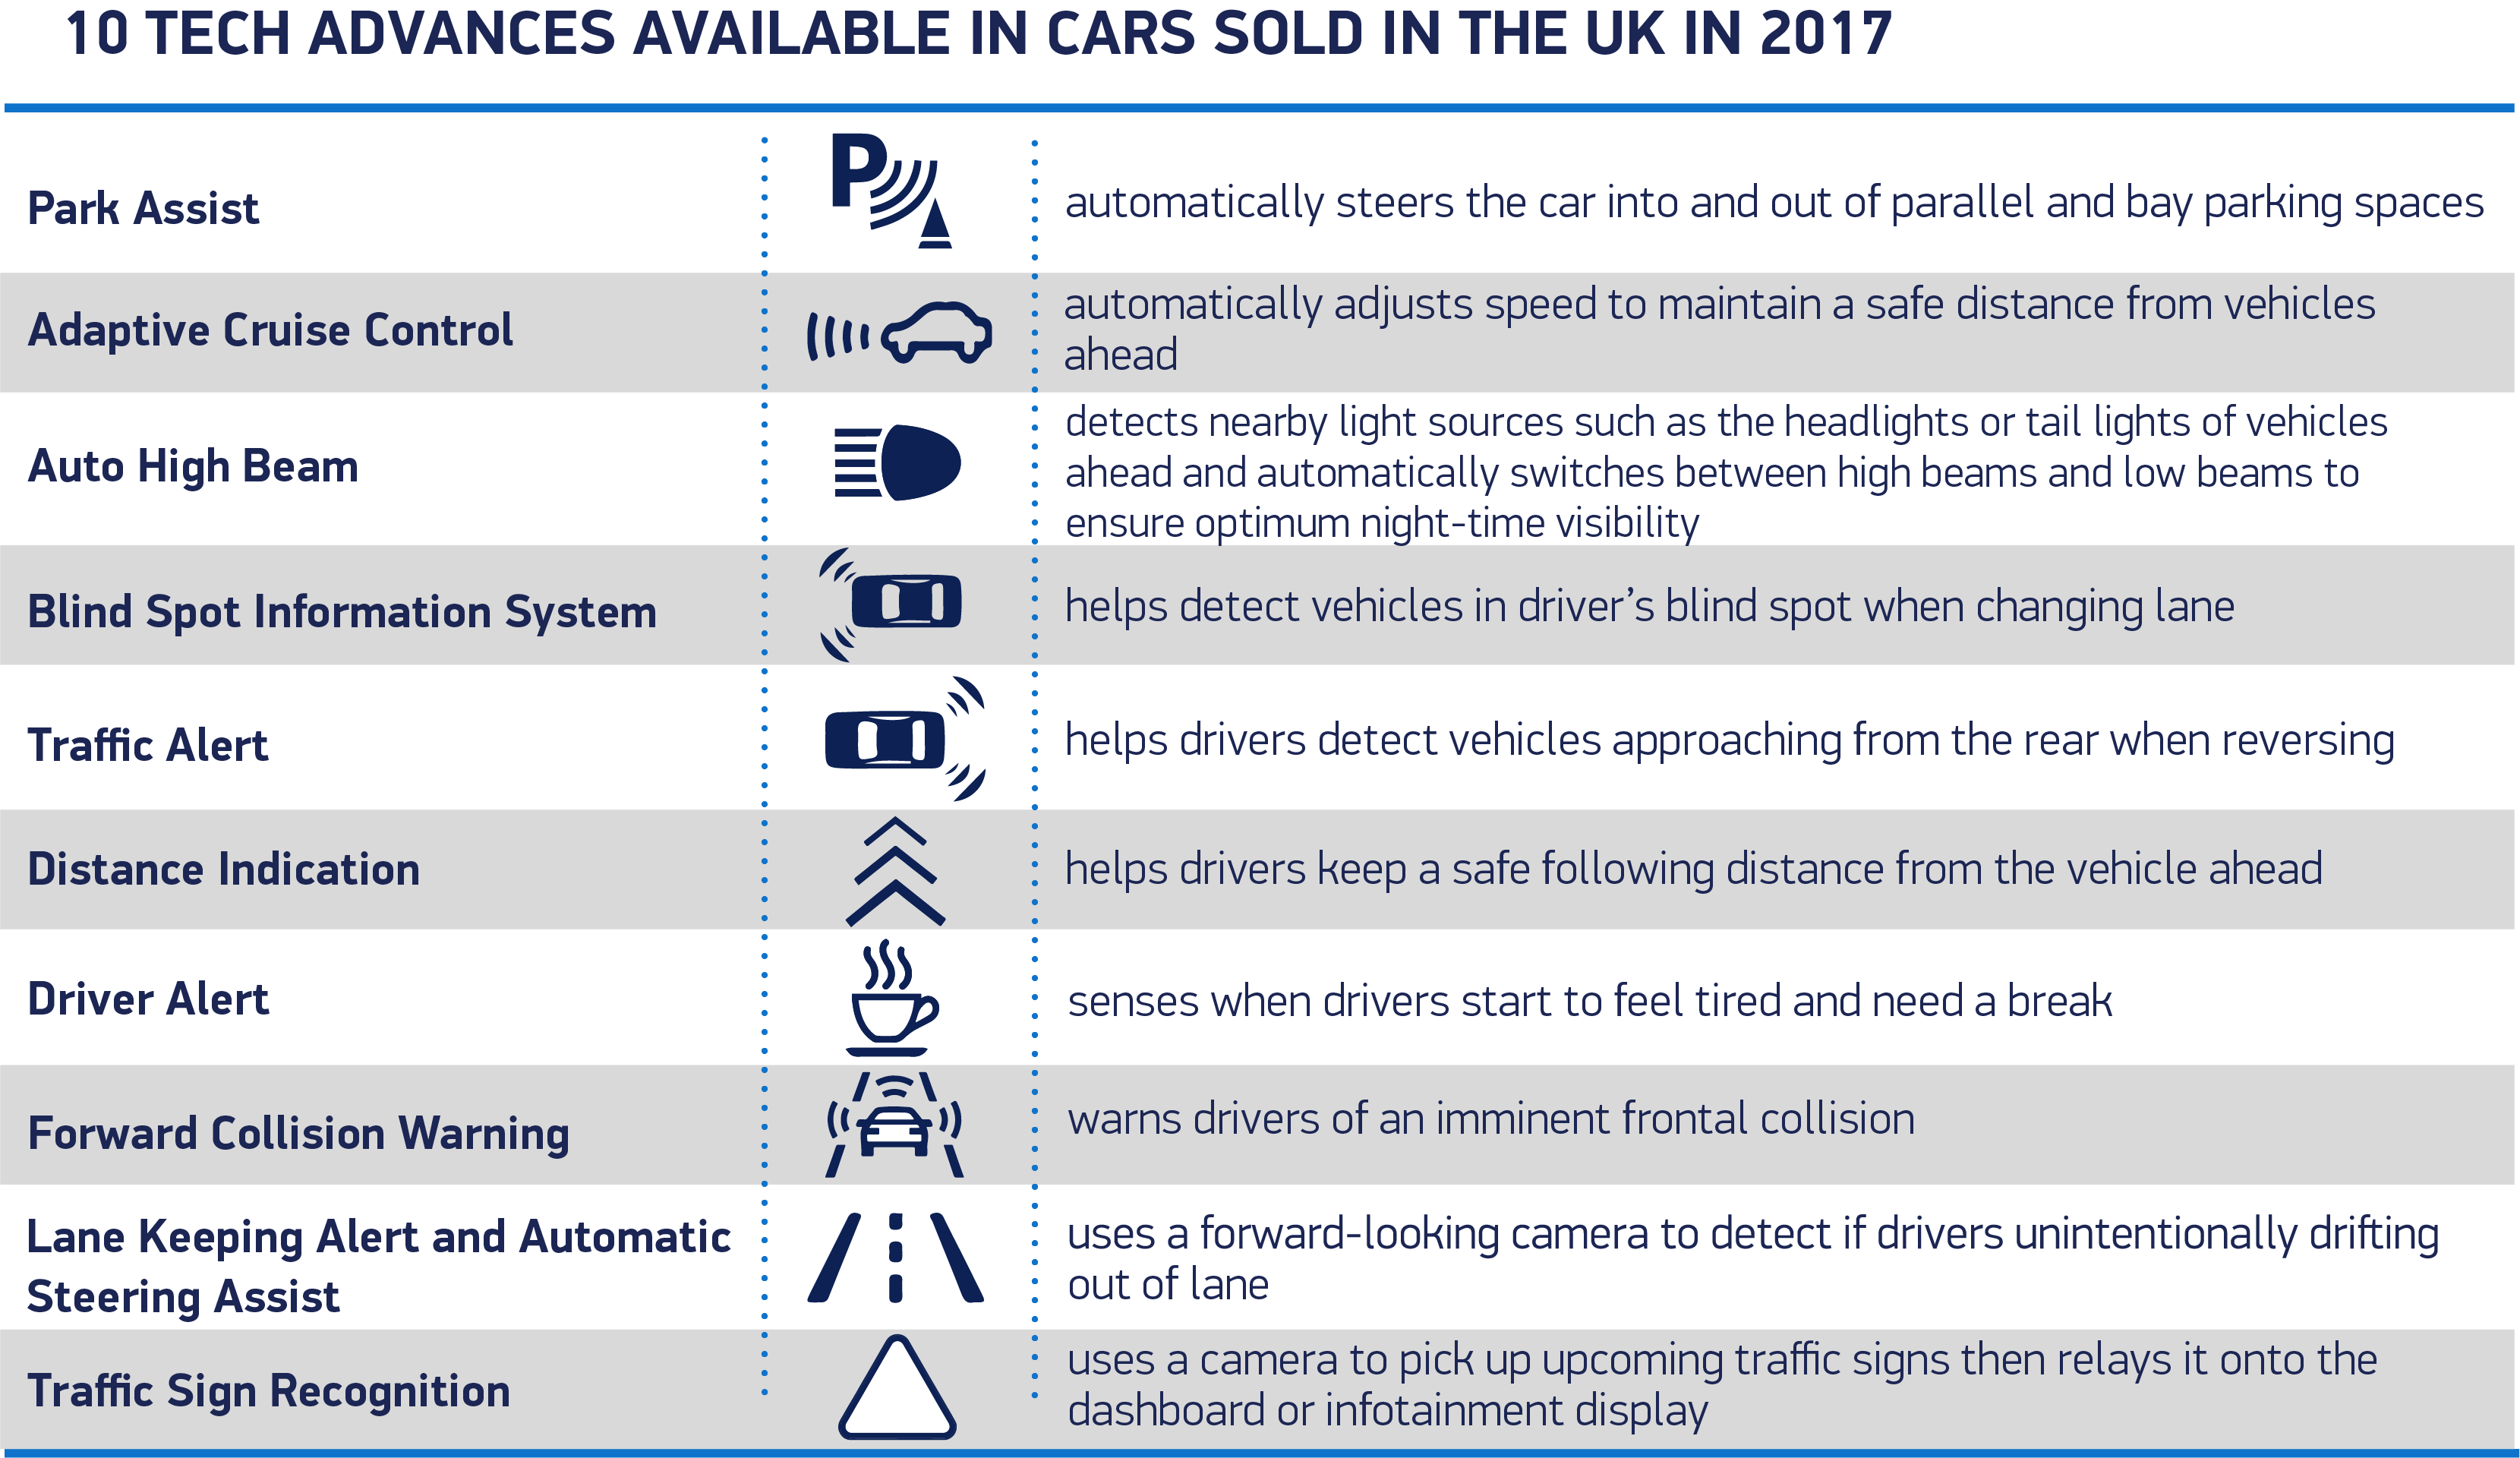 10 tech advances available in cars sold in the uk in 2017